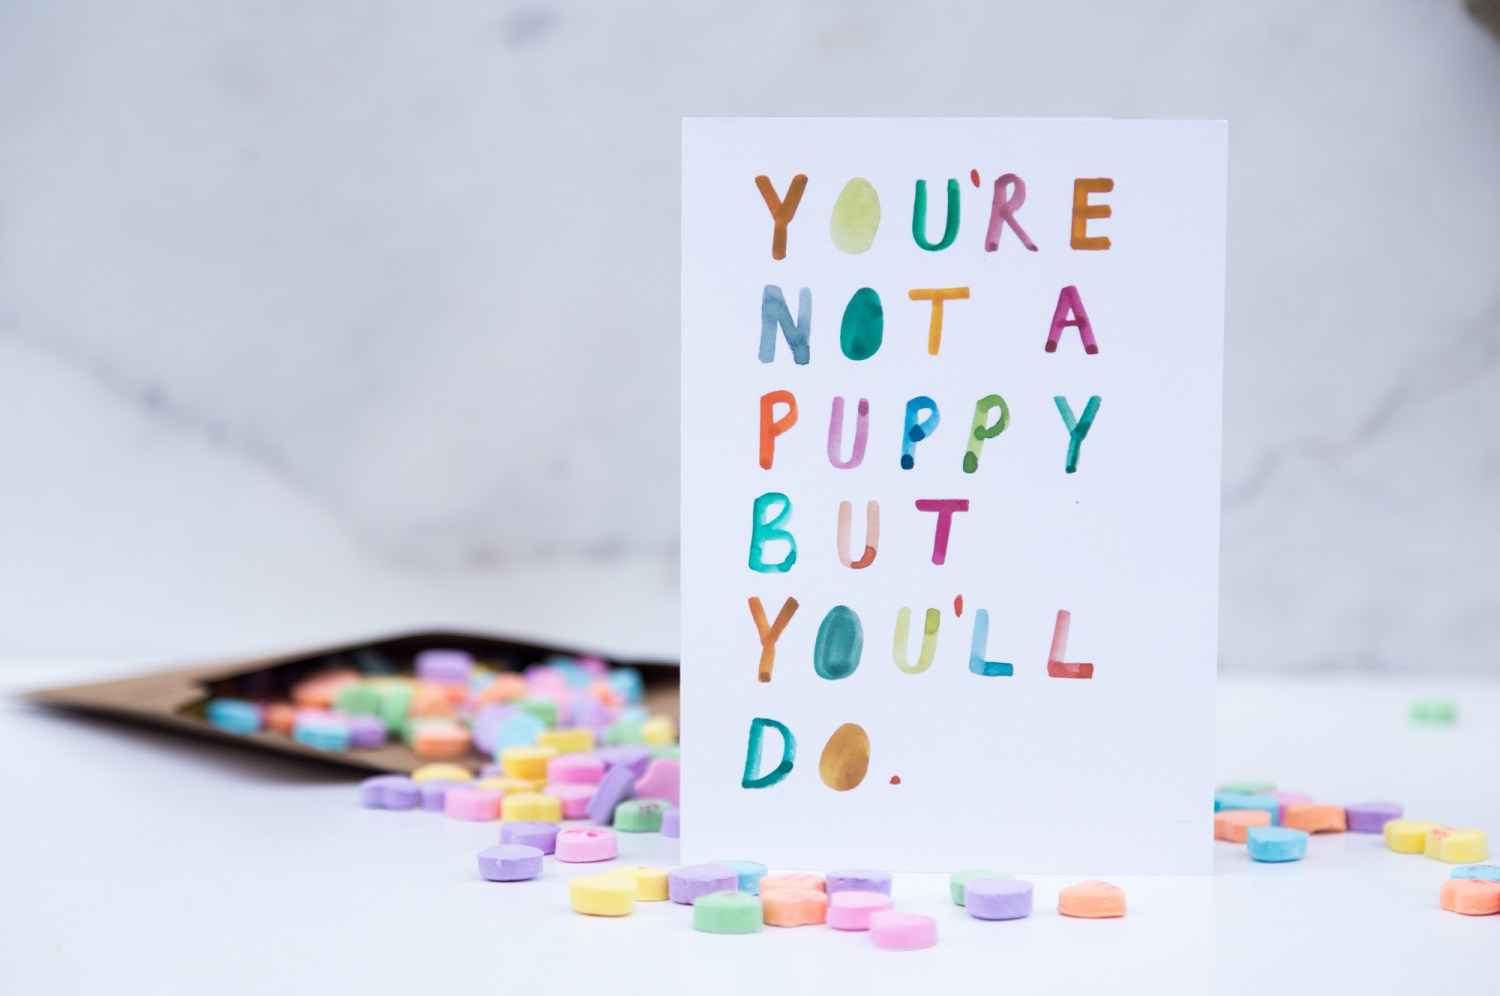 Candyhearts-youlldo-1 copy.jpg